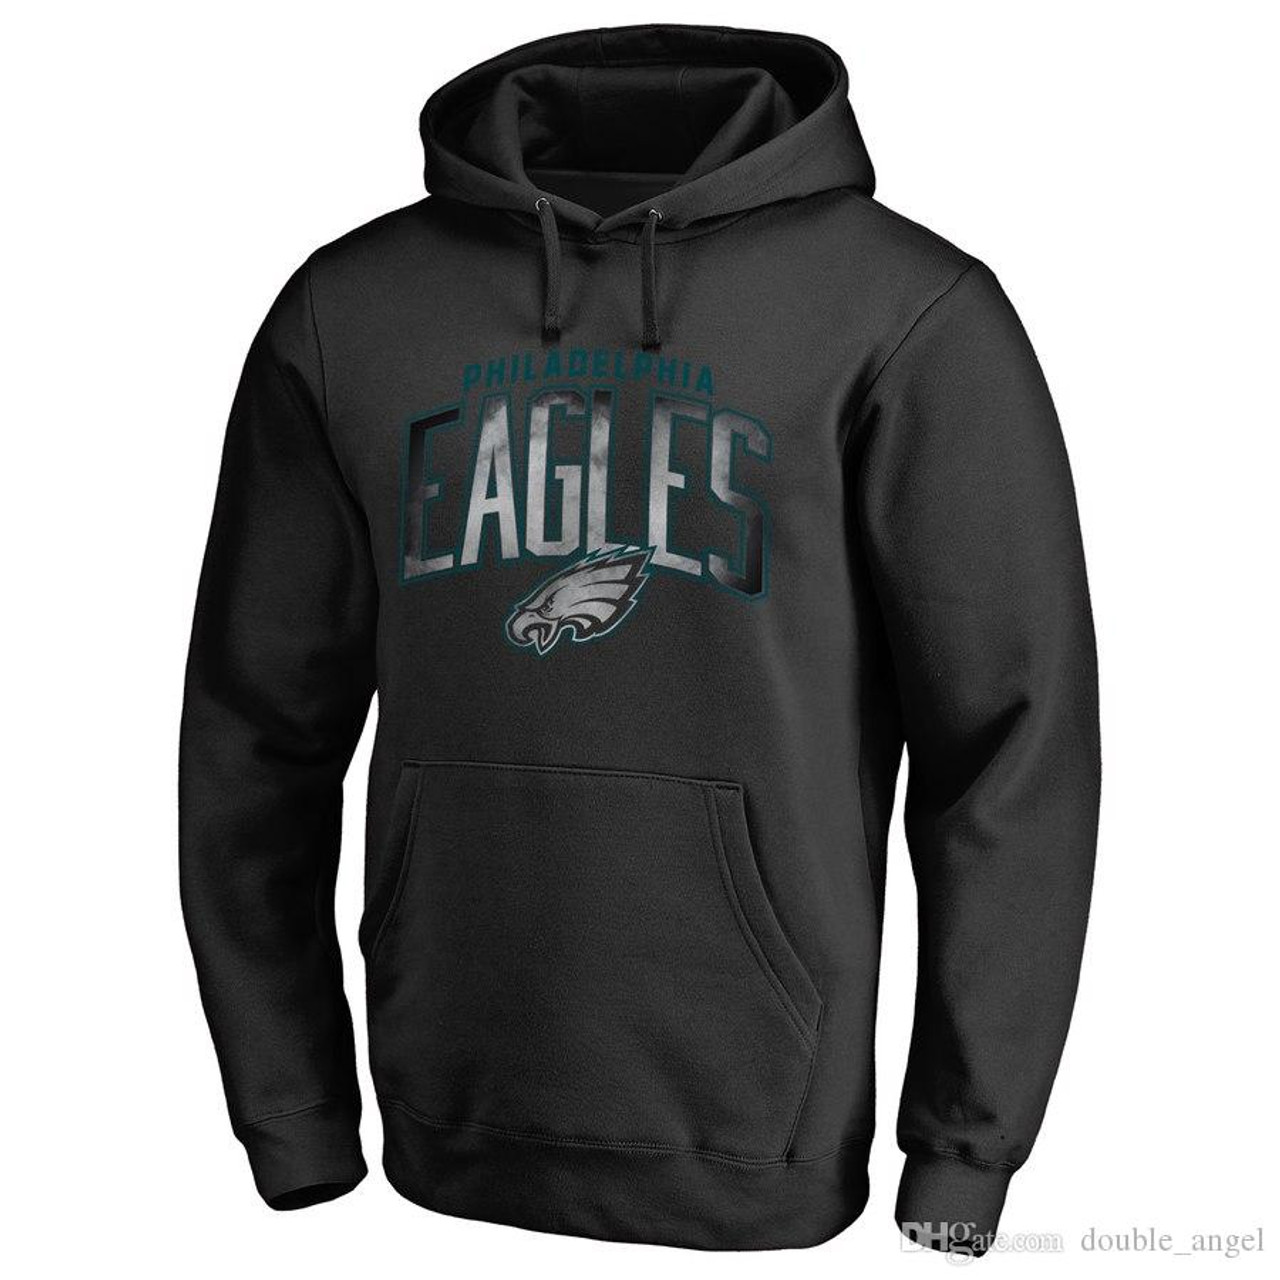 **(OFFICIALLY-LICENSED-PHILADELPHIA-EAGLES-PULLOVER-HOODIES/OFFICIAL-EAGLES-TEAM-LOGOS & FANACTICS-FOOTBALL-BRANDED/OFFICIAL-PRO-LINE-N.F.L.EAGLES-TEAM-PREMIUM-PULLOVER-HOODIES)**